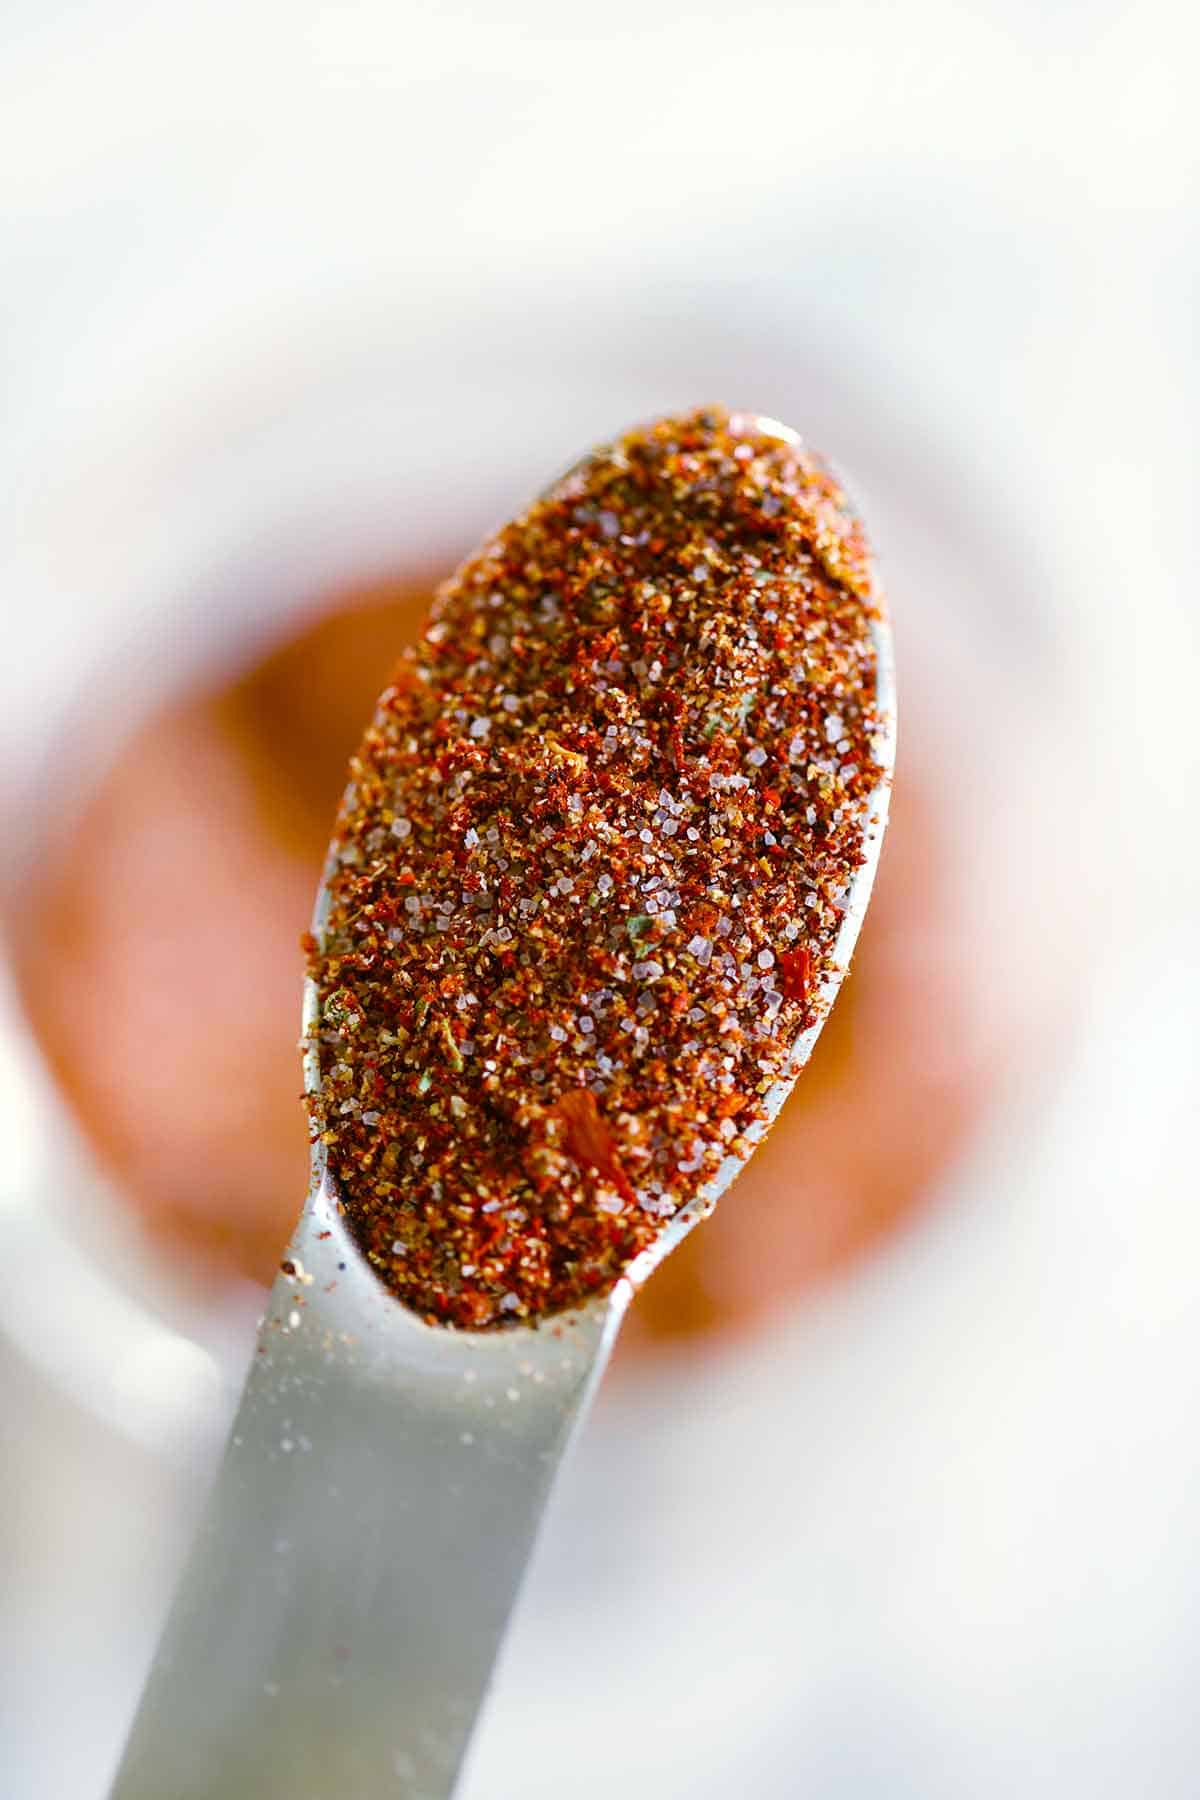 Close up photo of a spoonful of homemade taco seasoning blend.